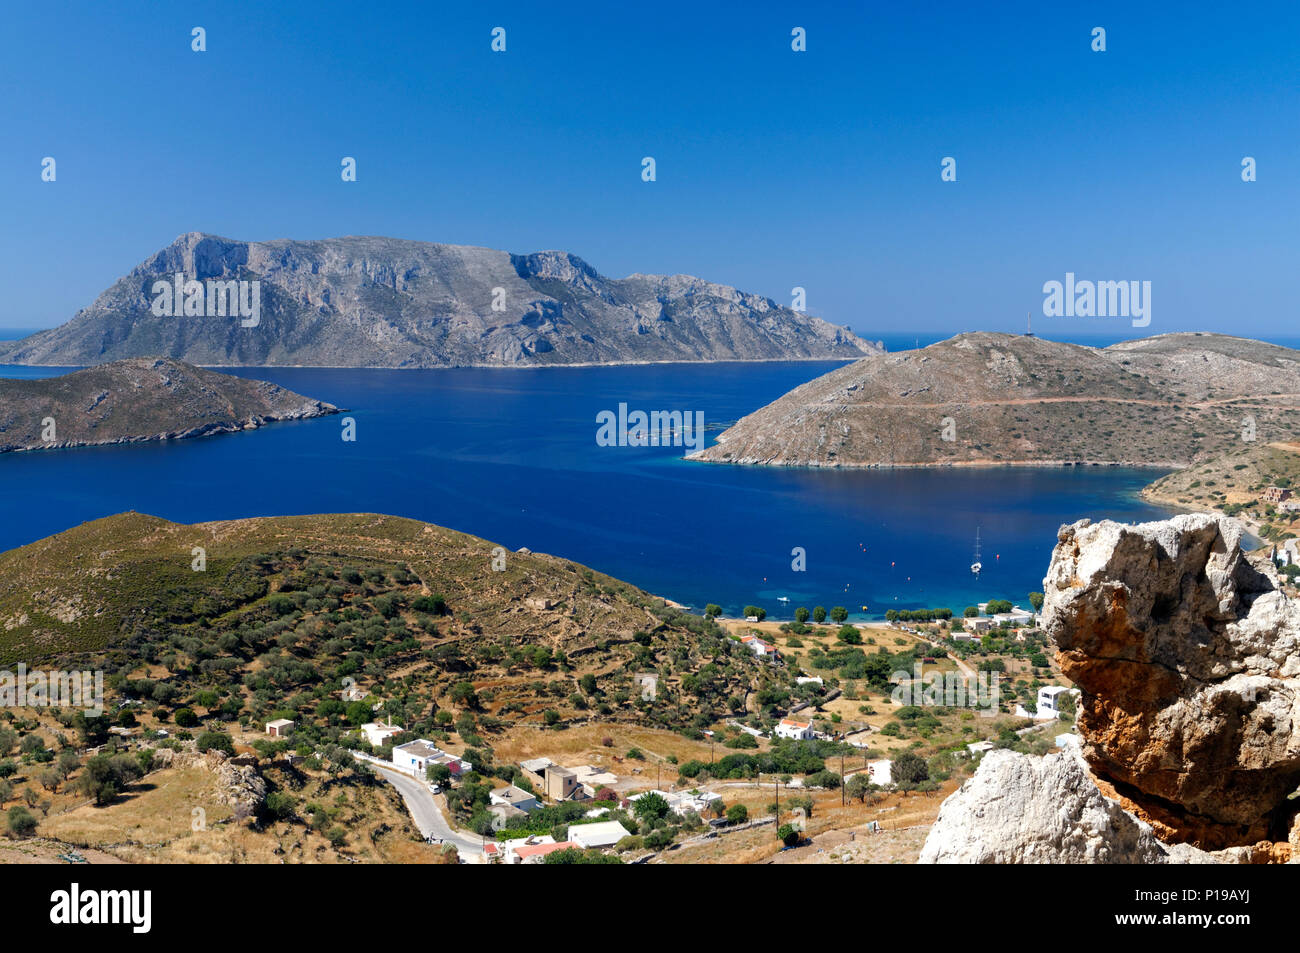 View of Telendos Island from mountains above Emborios, Kalymnos, Dodecanese Islands, Greece. - Stock Image